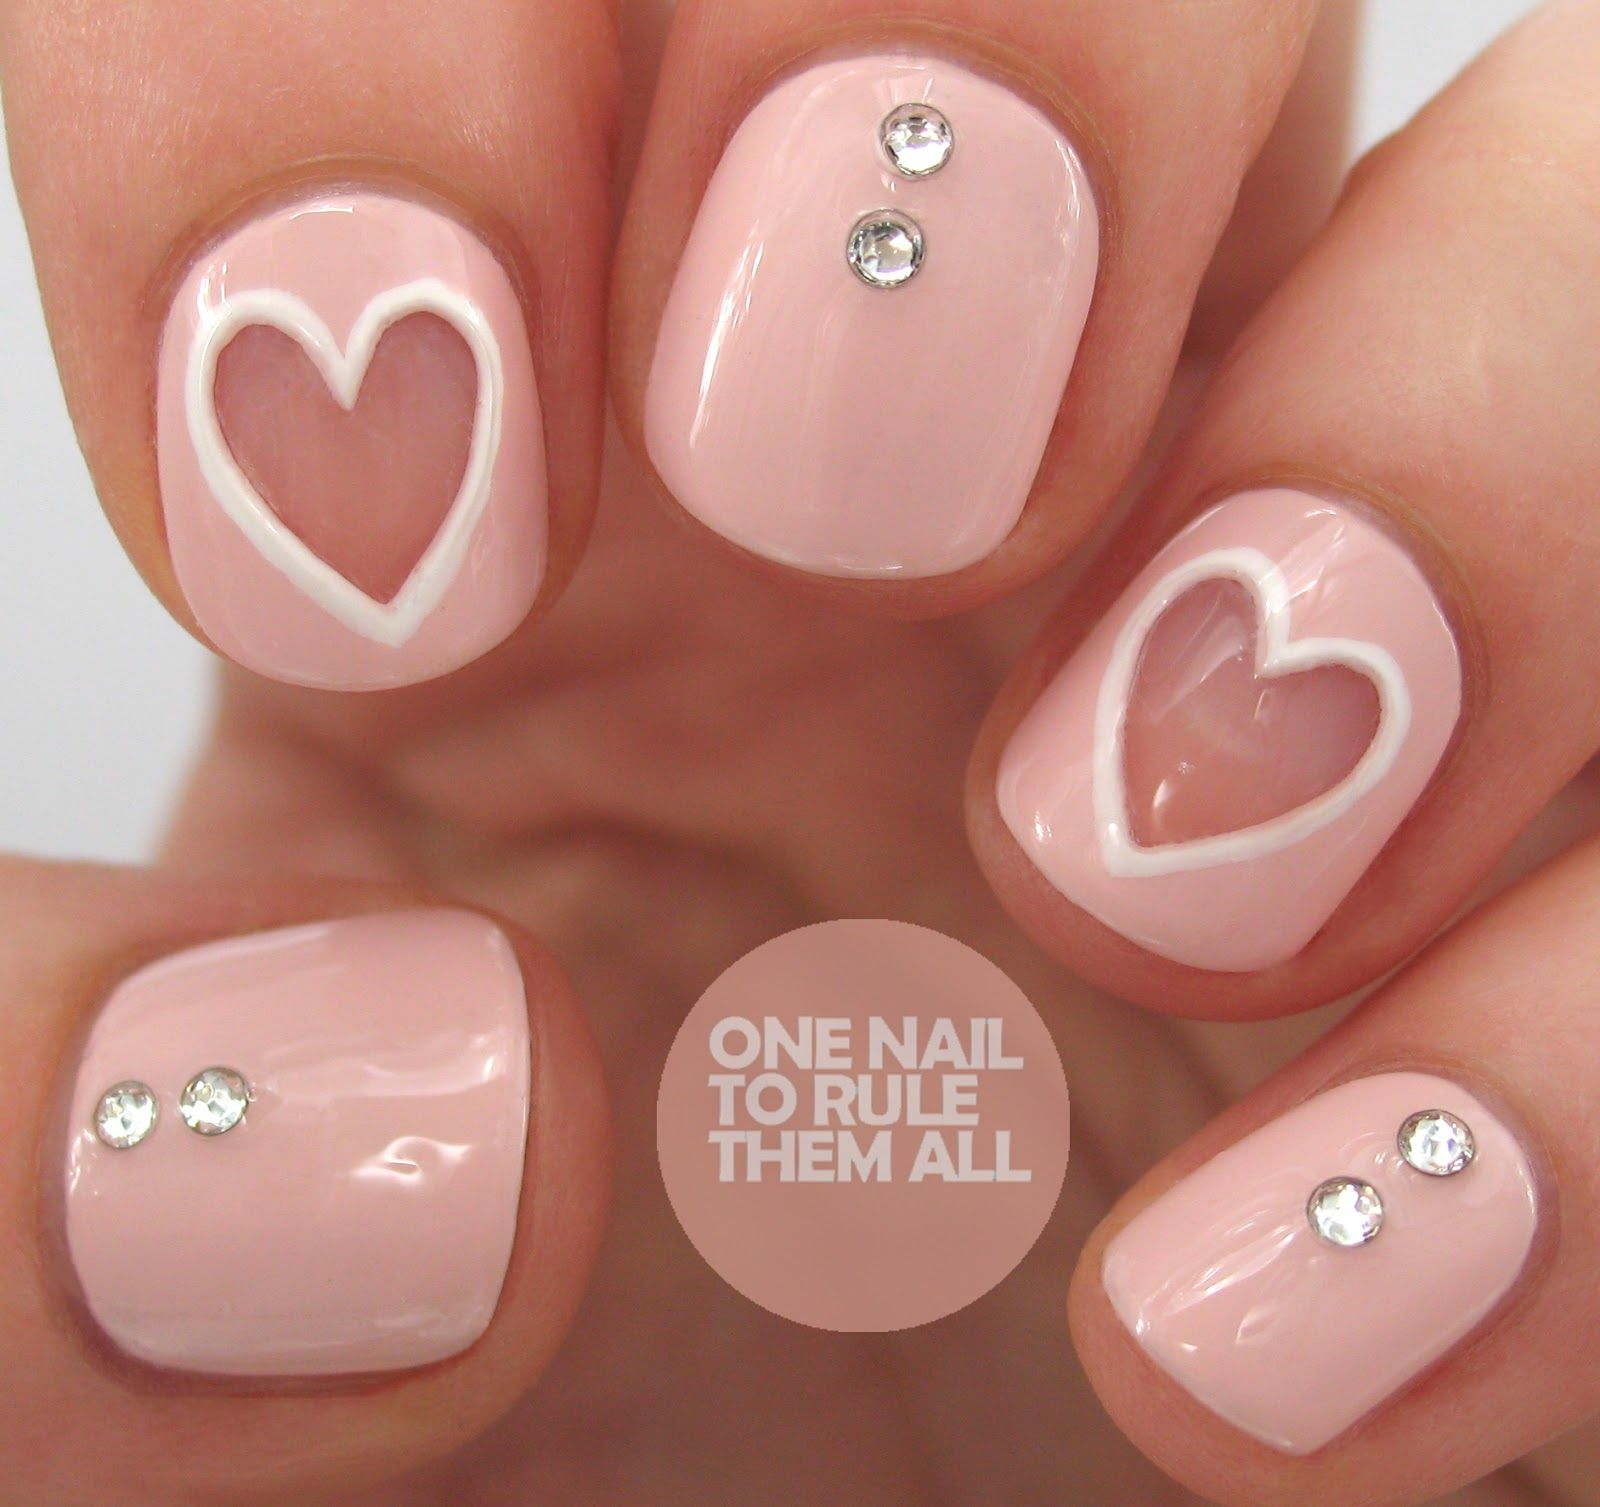 Tutorial Thursday: Negative Space Nails - One Nail To Rule Them All